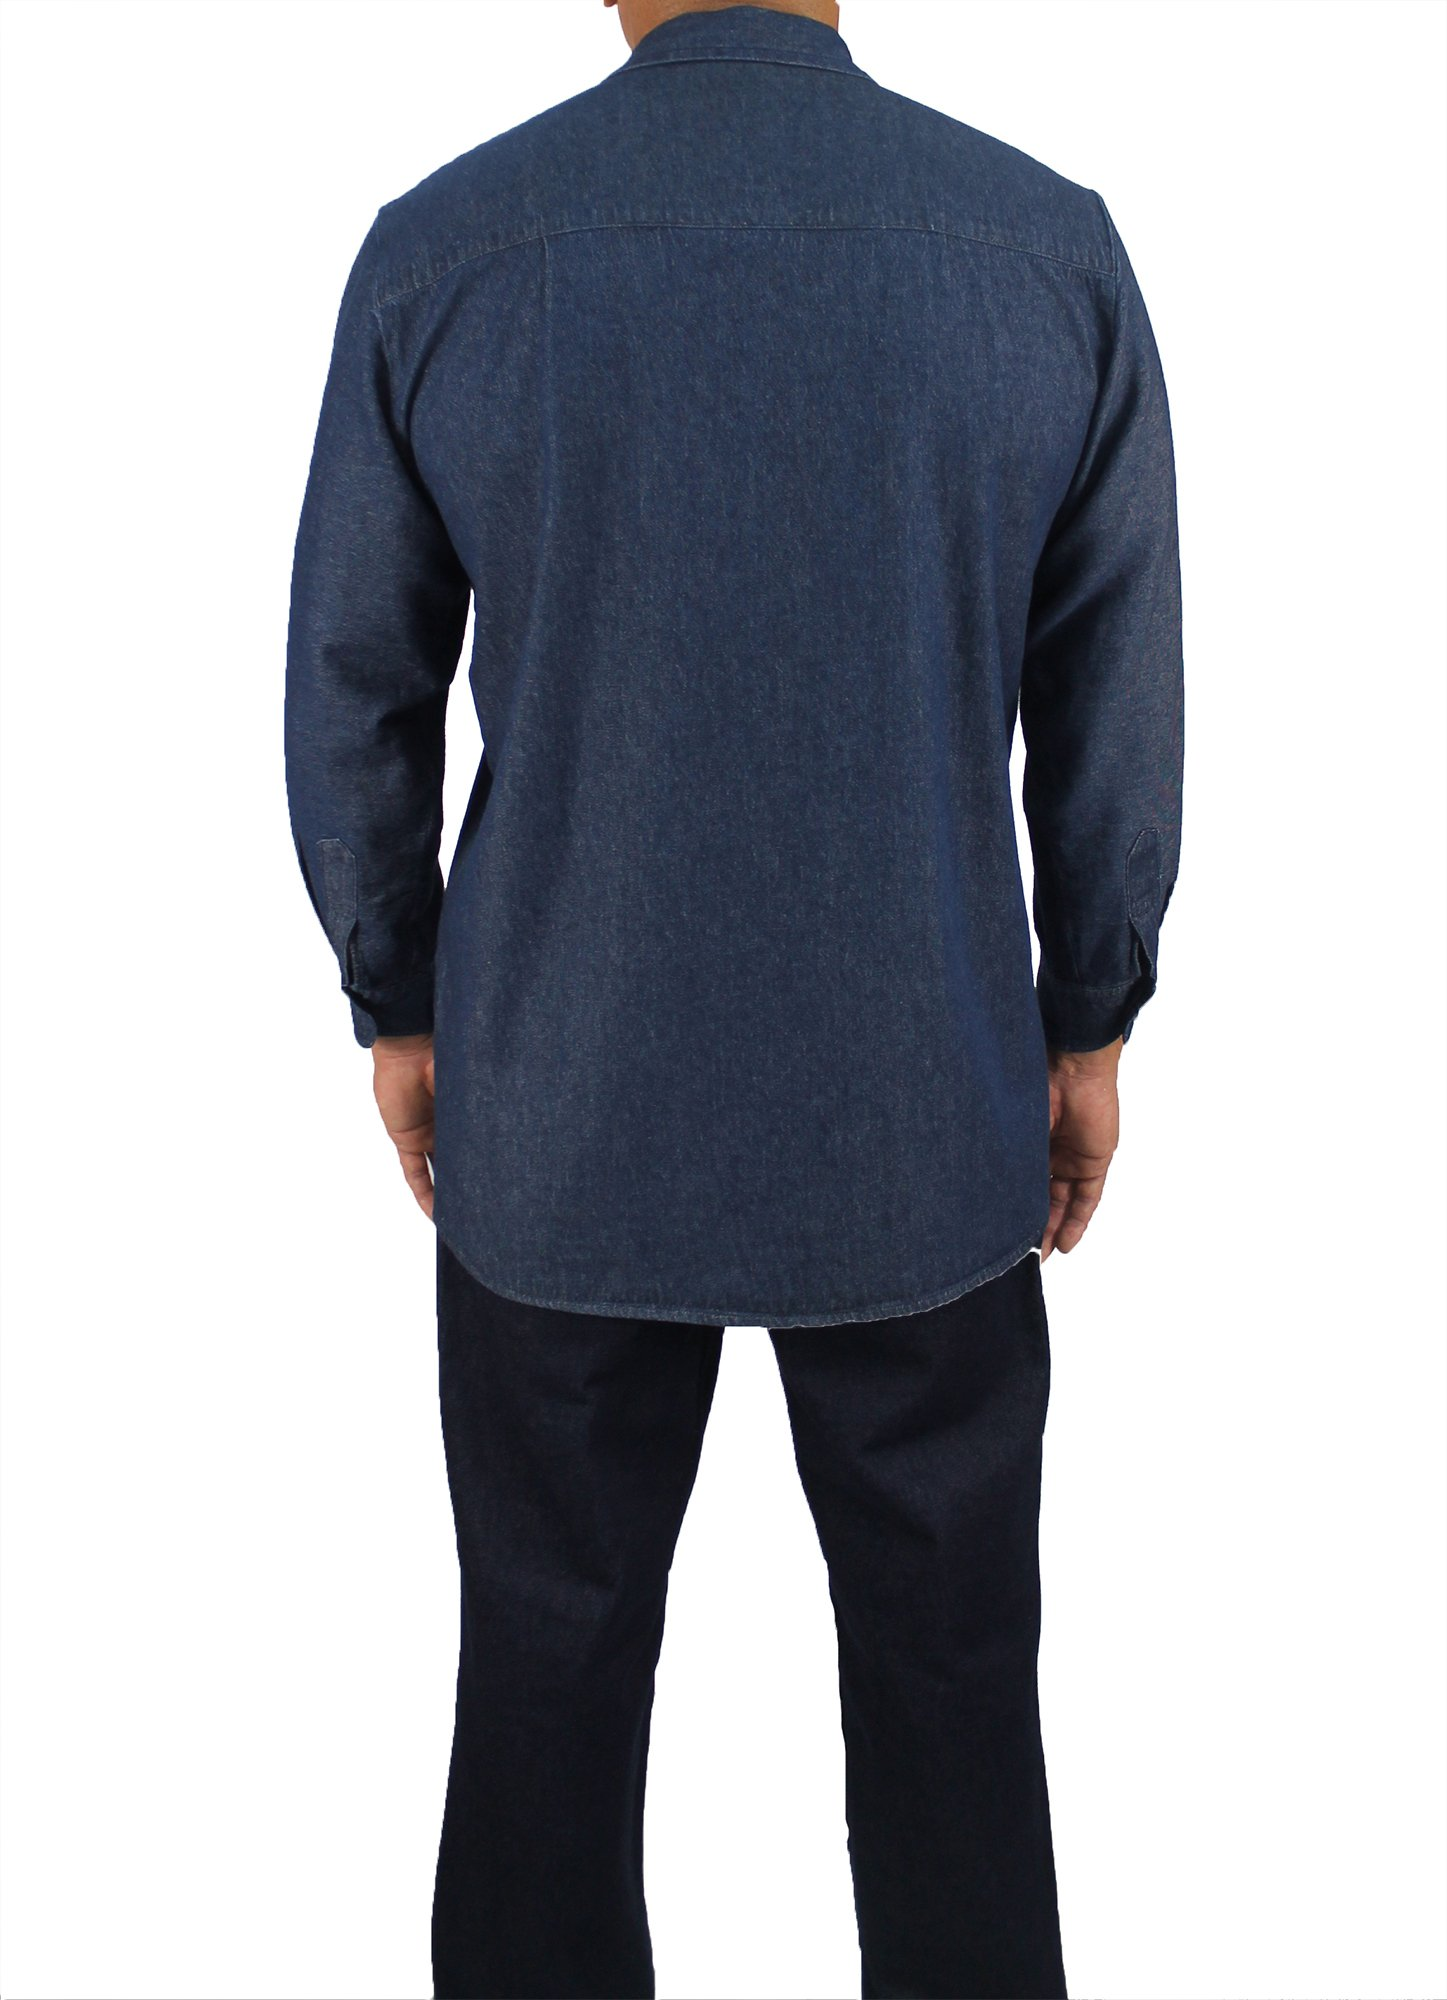 Kolossus Men's Lightweight 100% Cotton Long Sleeve Work Shirt with Pockets (Chambray, Small) by Kolossus (Image #2)